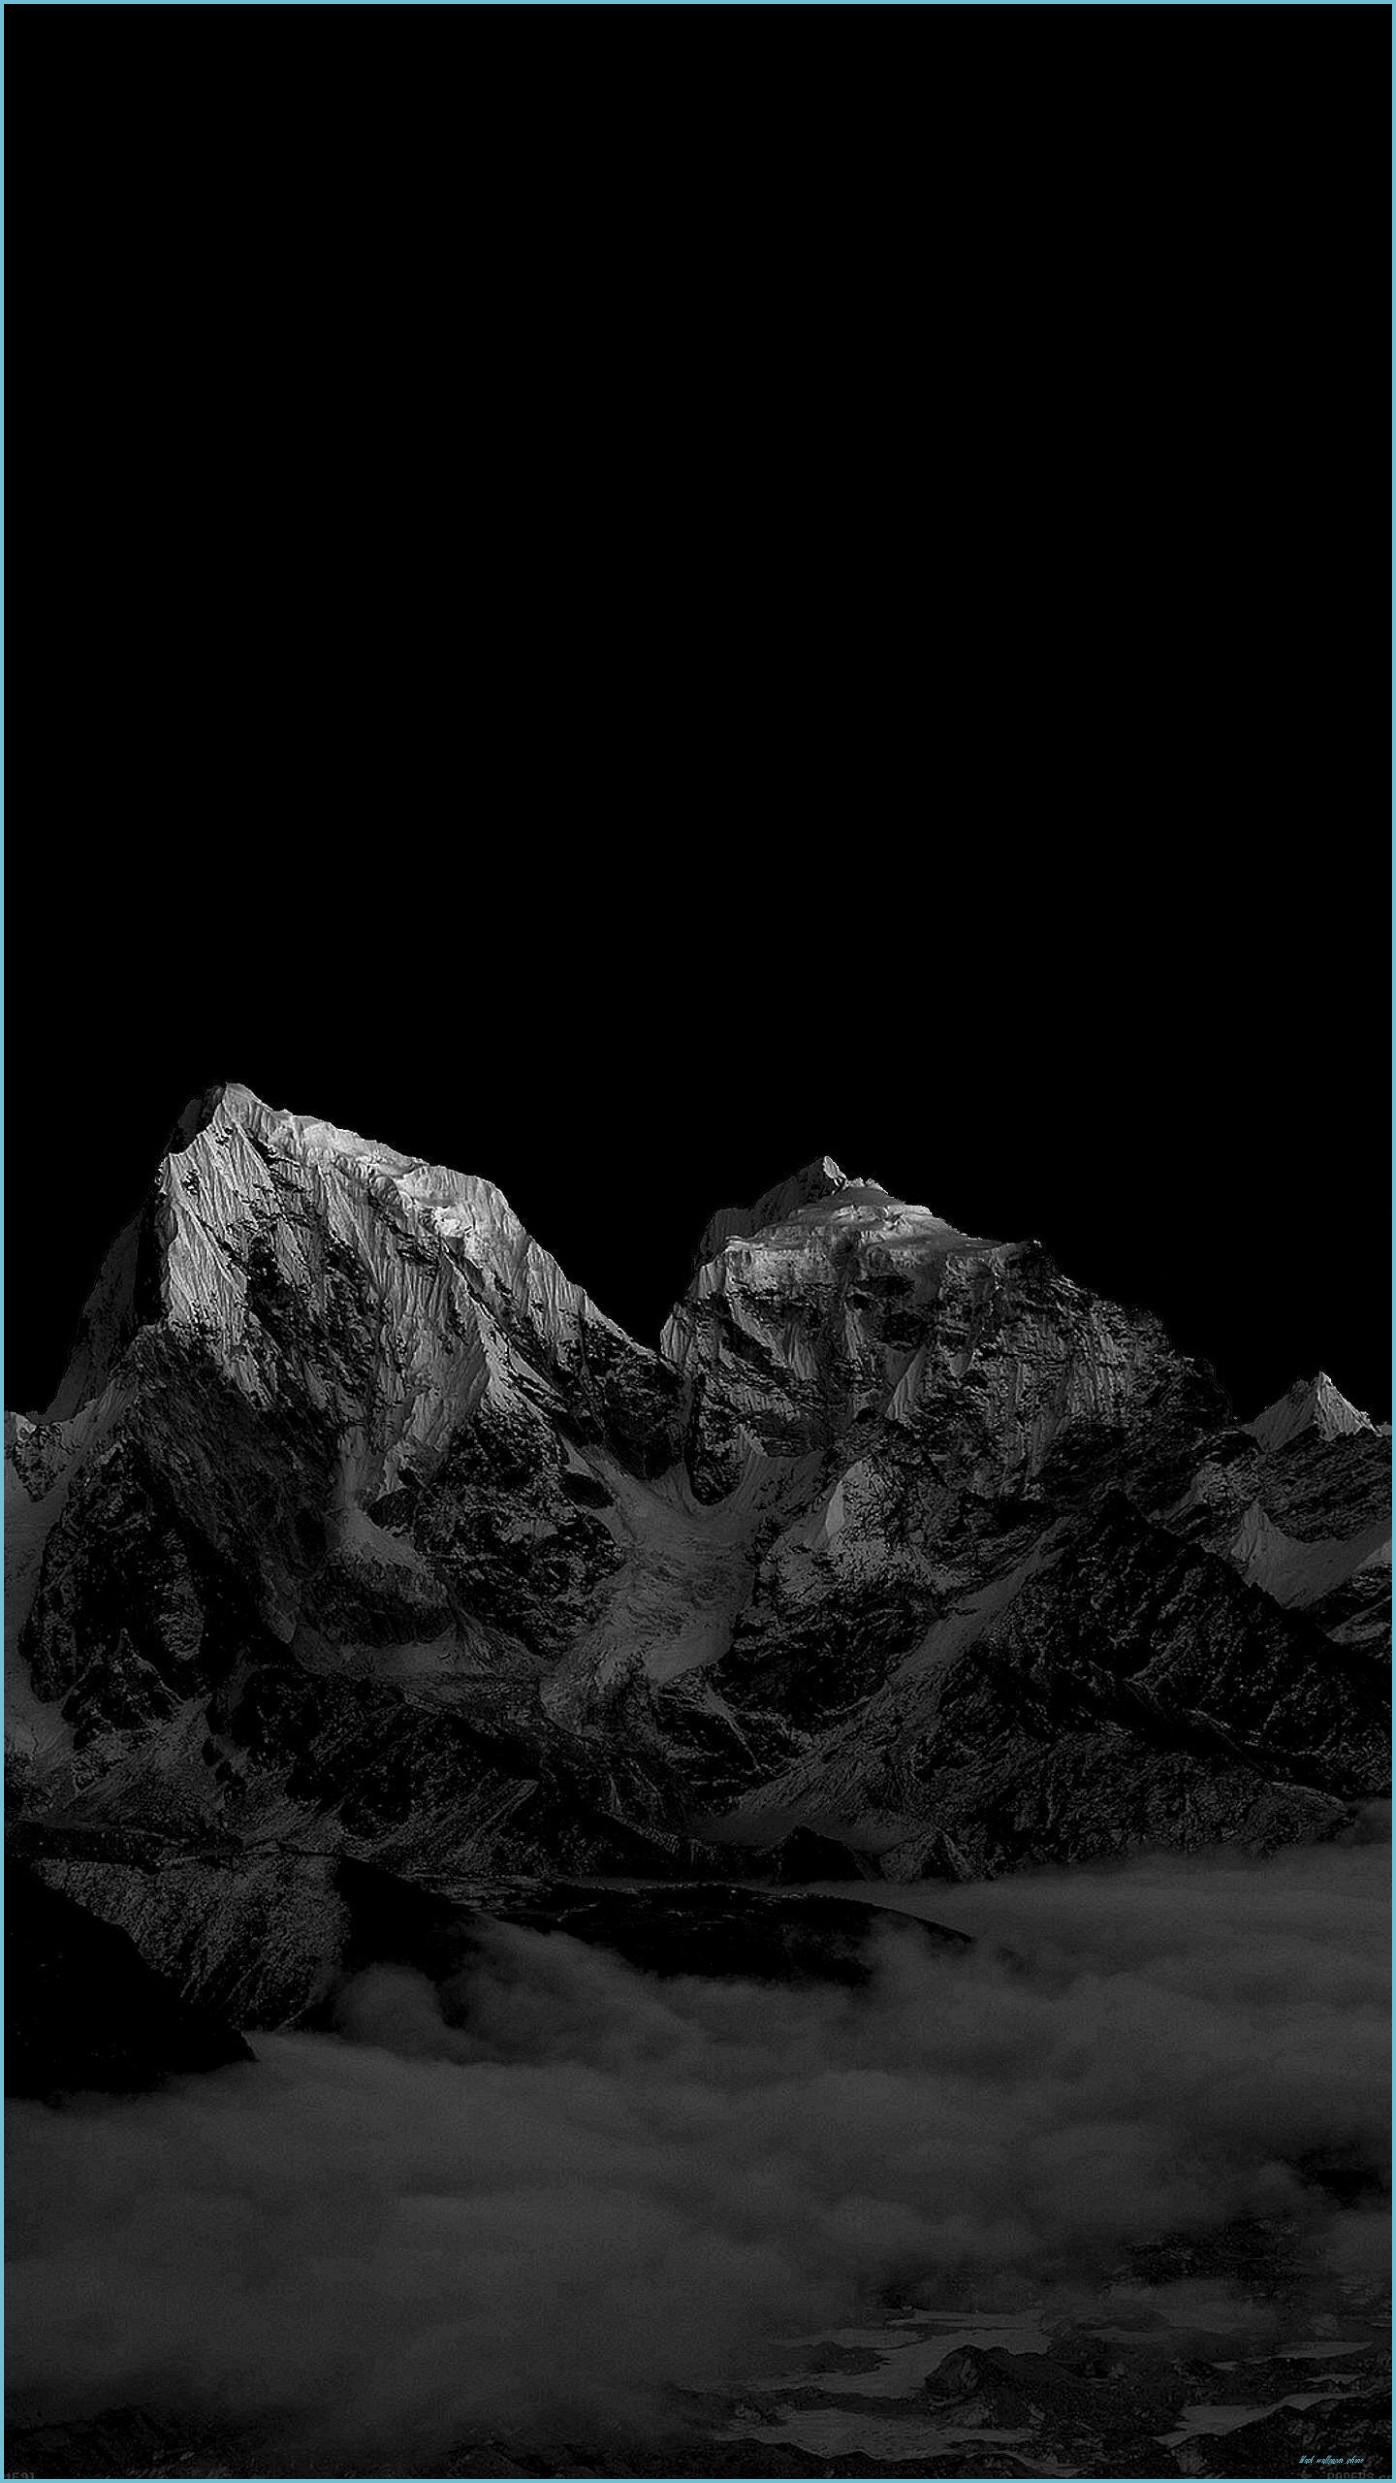 True black and OLED optimized wallpapers for iPhone XS pack 12 1396x2483